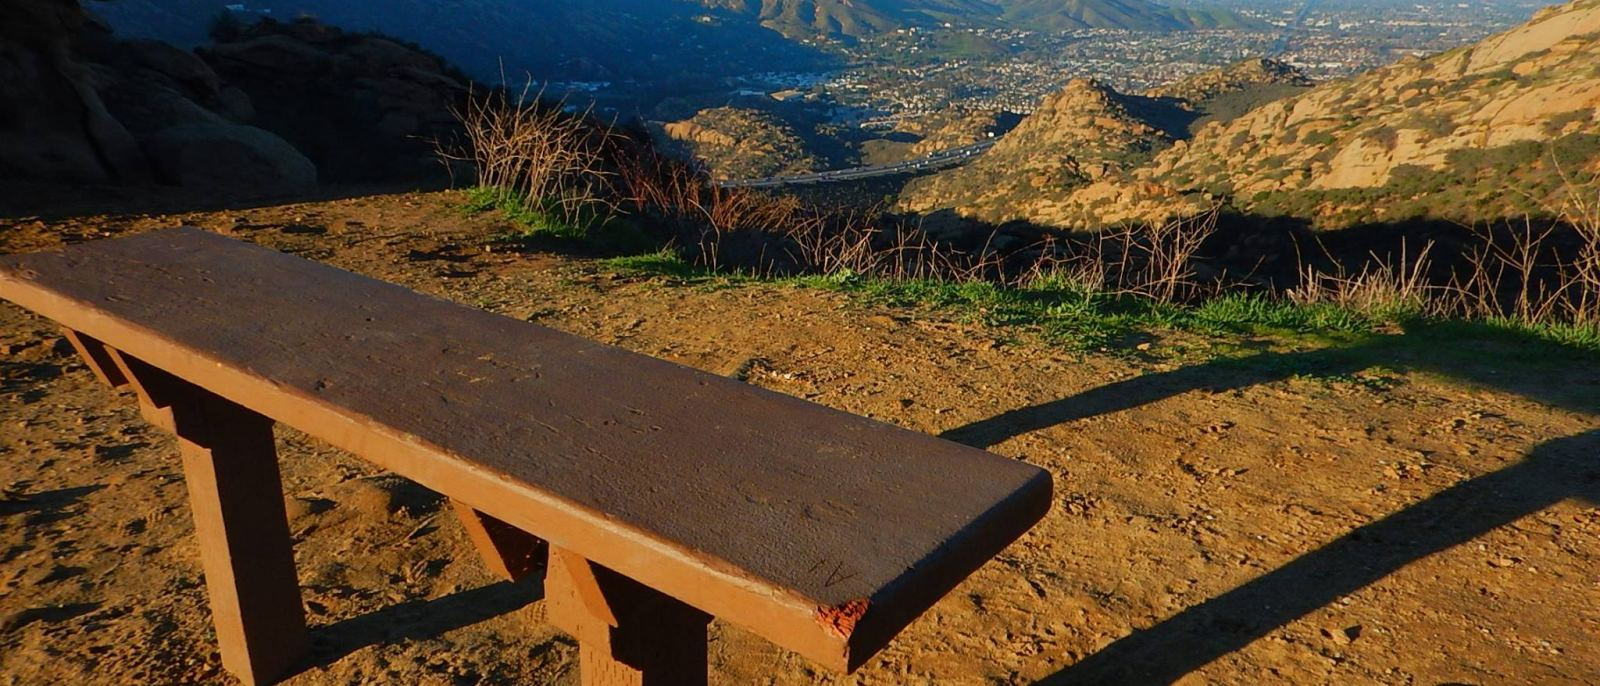 Sunset at Rocky Peak Park in Simi Valley